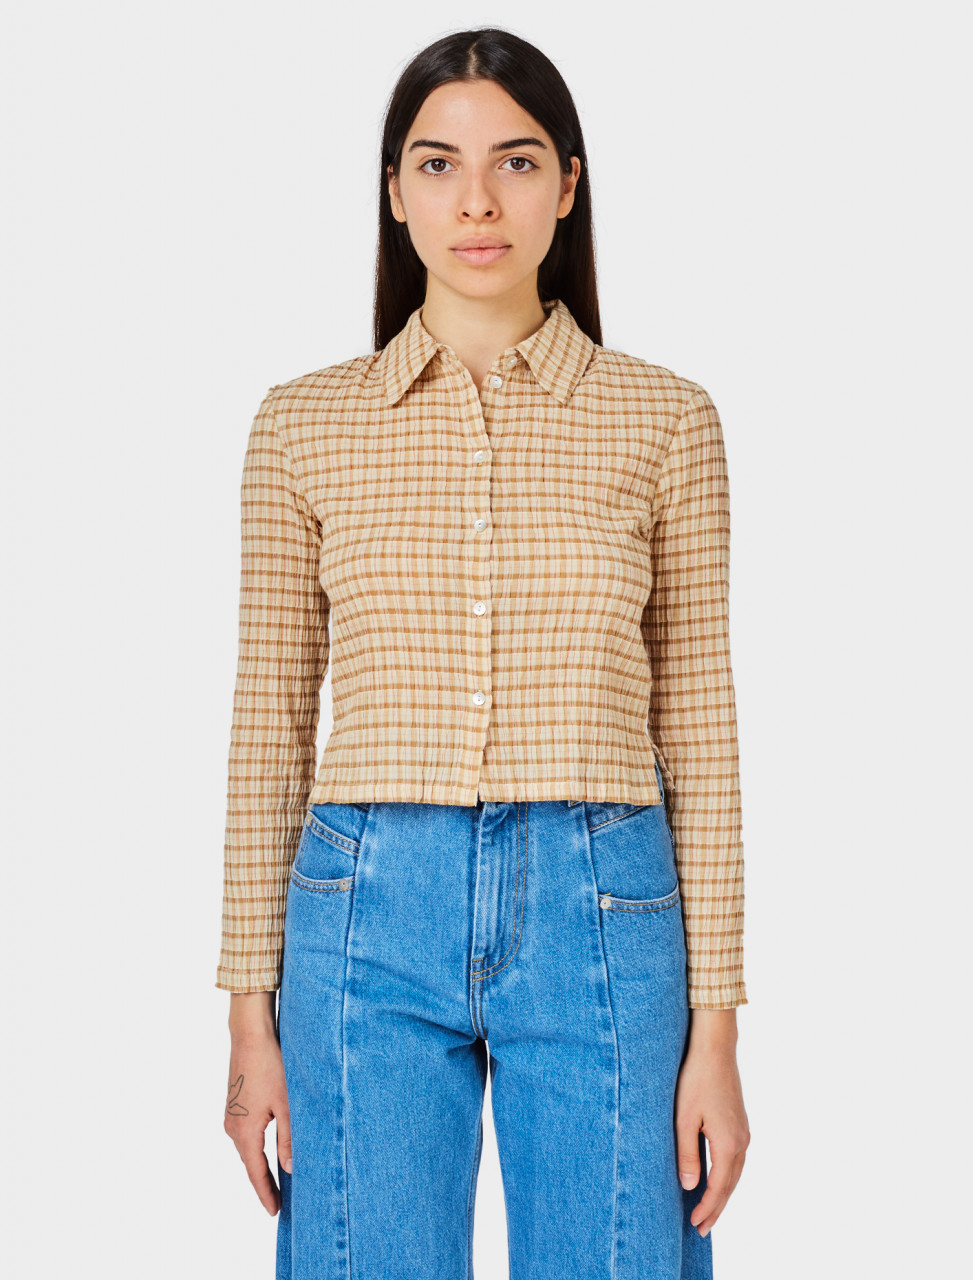 Front view of Paloma Wool Bisbal Shirt in Beige Check